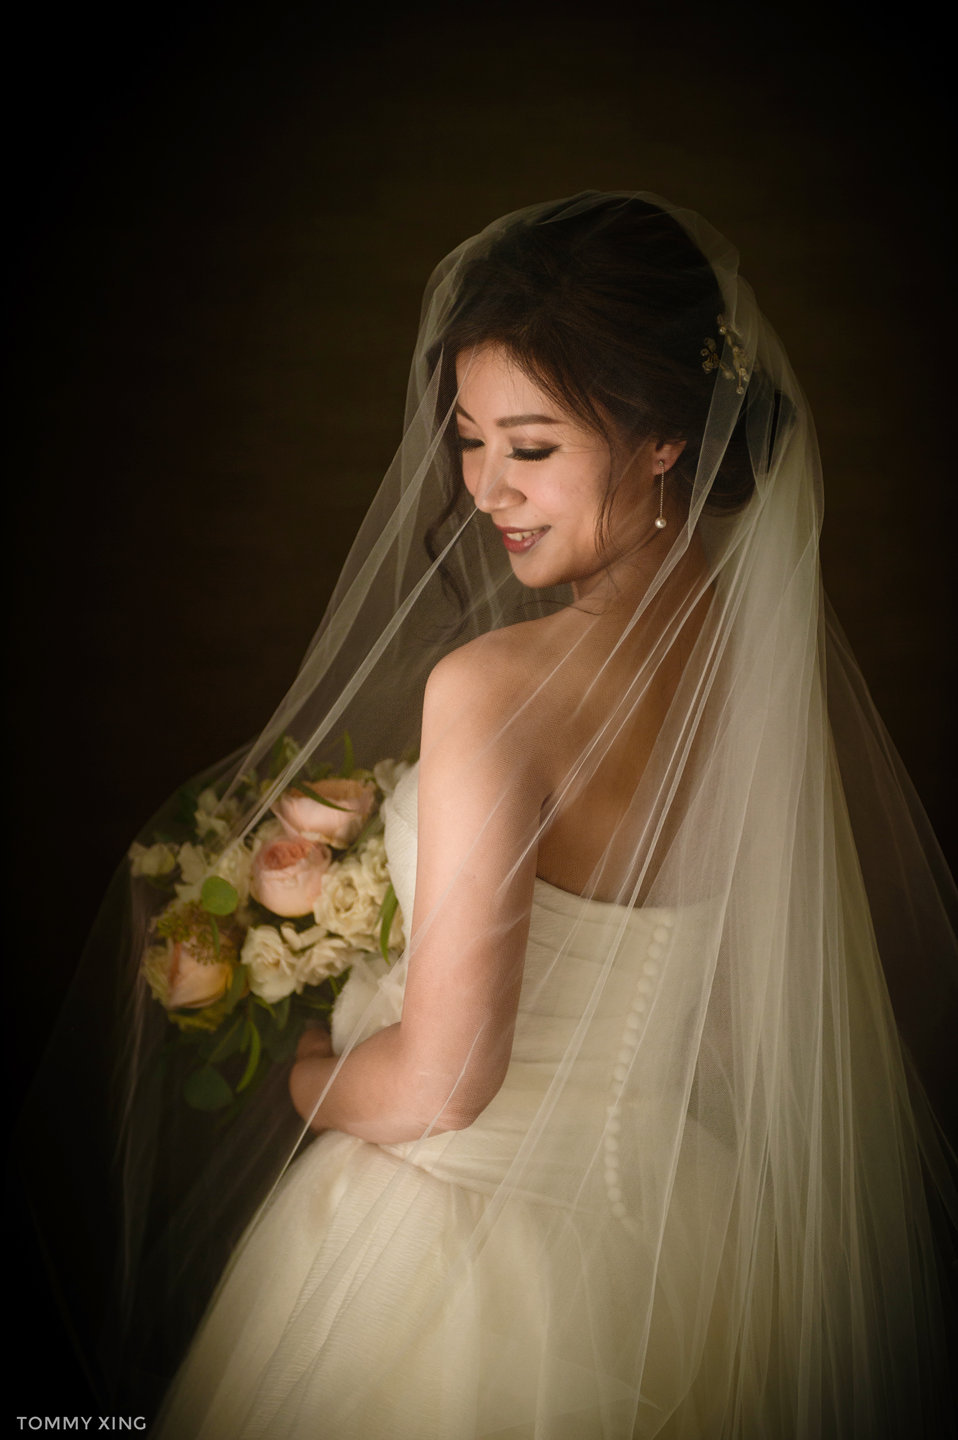 WAYFARERS CHAPEL WEDDING - Yaoyao & Yuanbo by Tommy Xing Photography 洛杉矶婚礼婚纱摄影 06.jpg